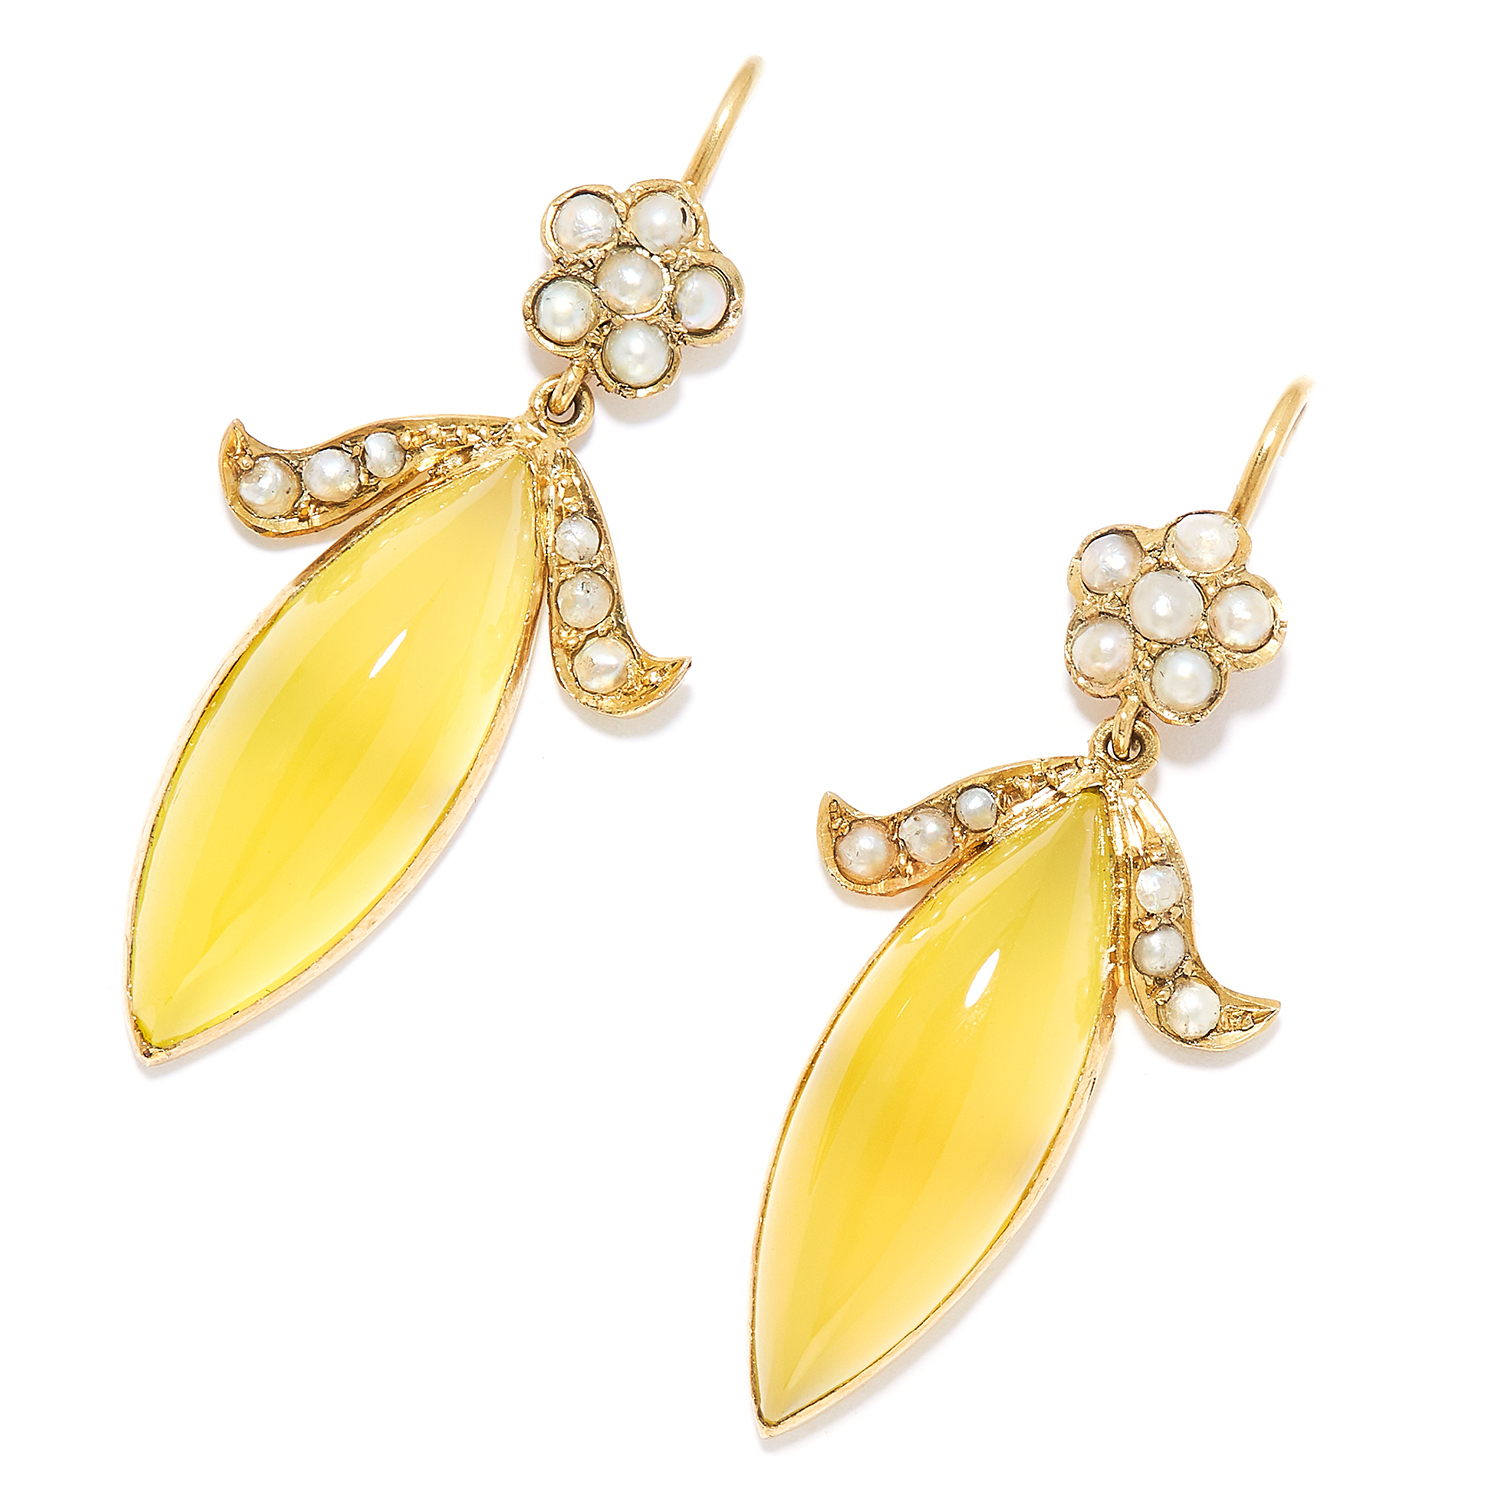 PEARL AND YELLOW GEMSTONE EARRINGS in yellow gold, in foliate and ribbon motif set with seed